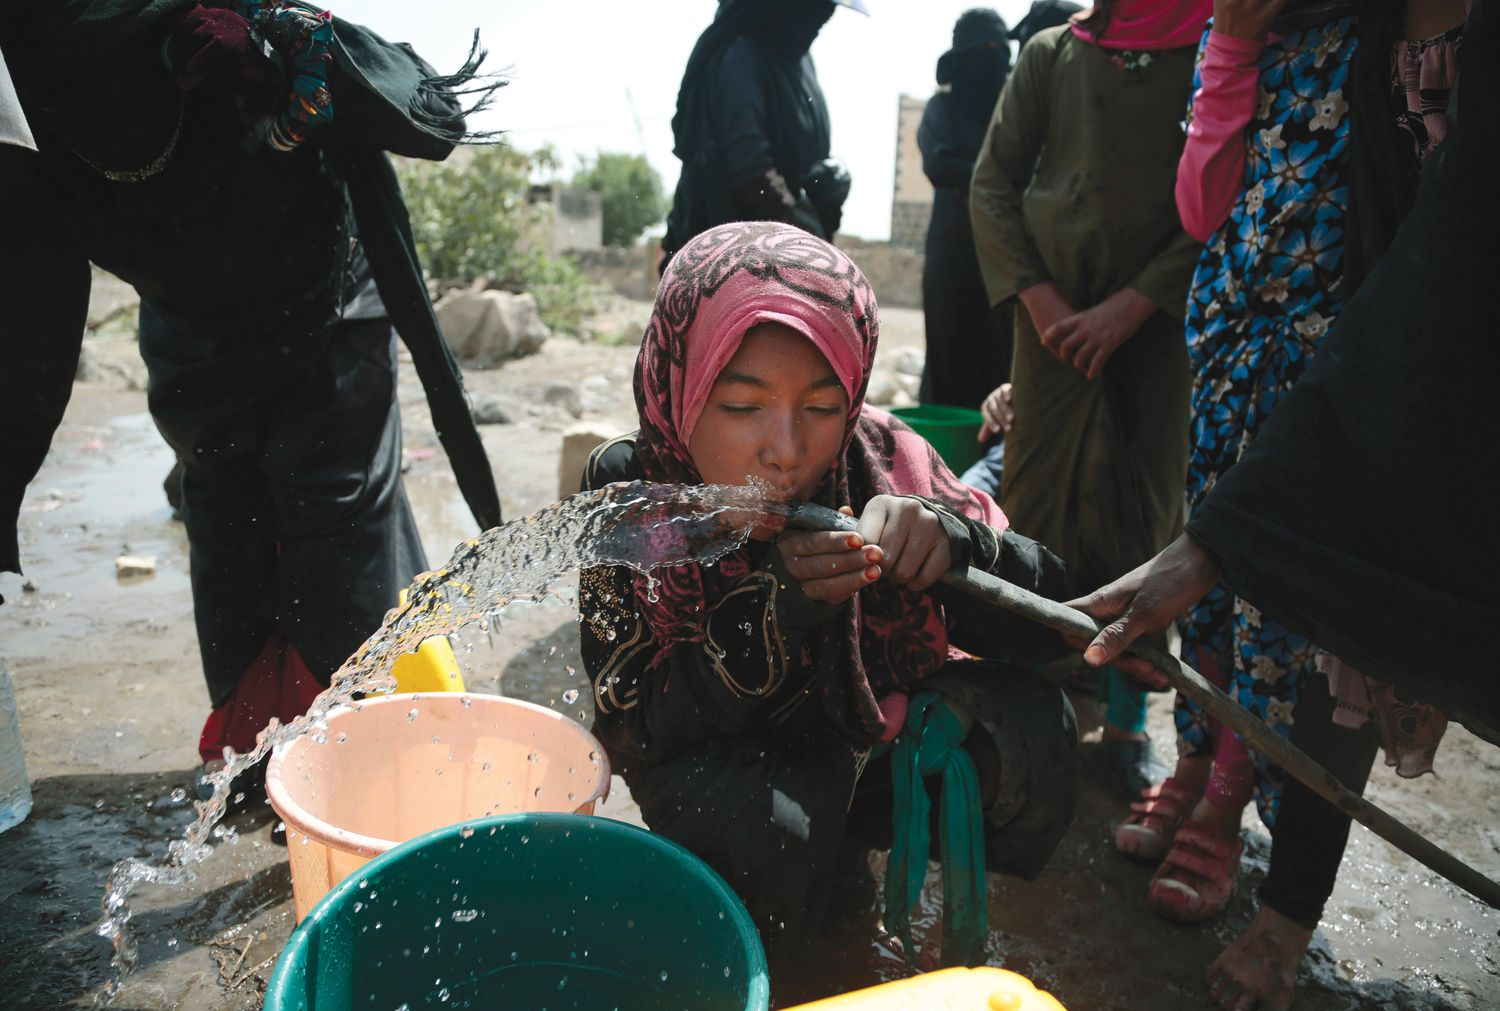 A GIRL DRINKS WATER ALLEGED TO CONTAIN THE BACTERIUM VIBRIO CHOLERA ON THE OUTSKIRTS OF SANAA, YEMEN (ASSOCIATED PRESS PHOTO).